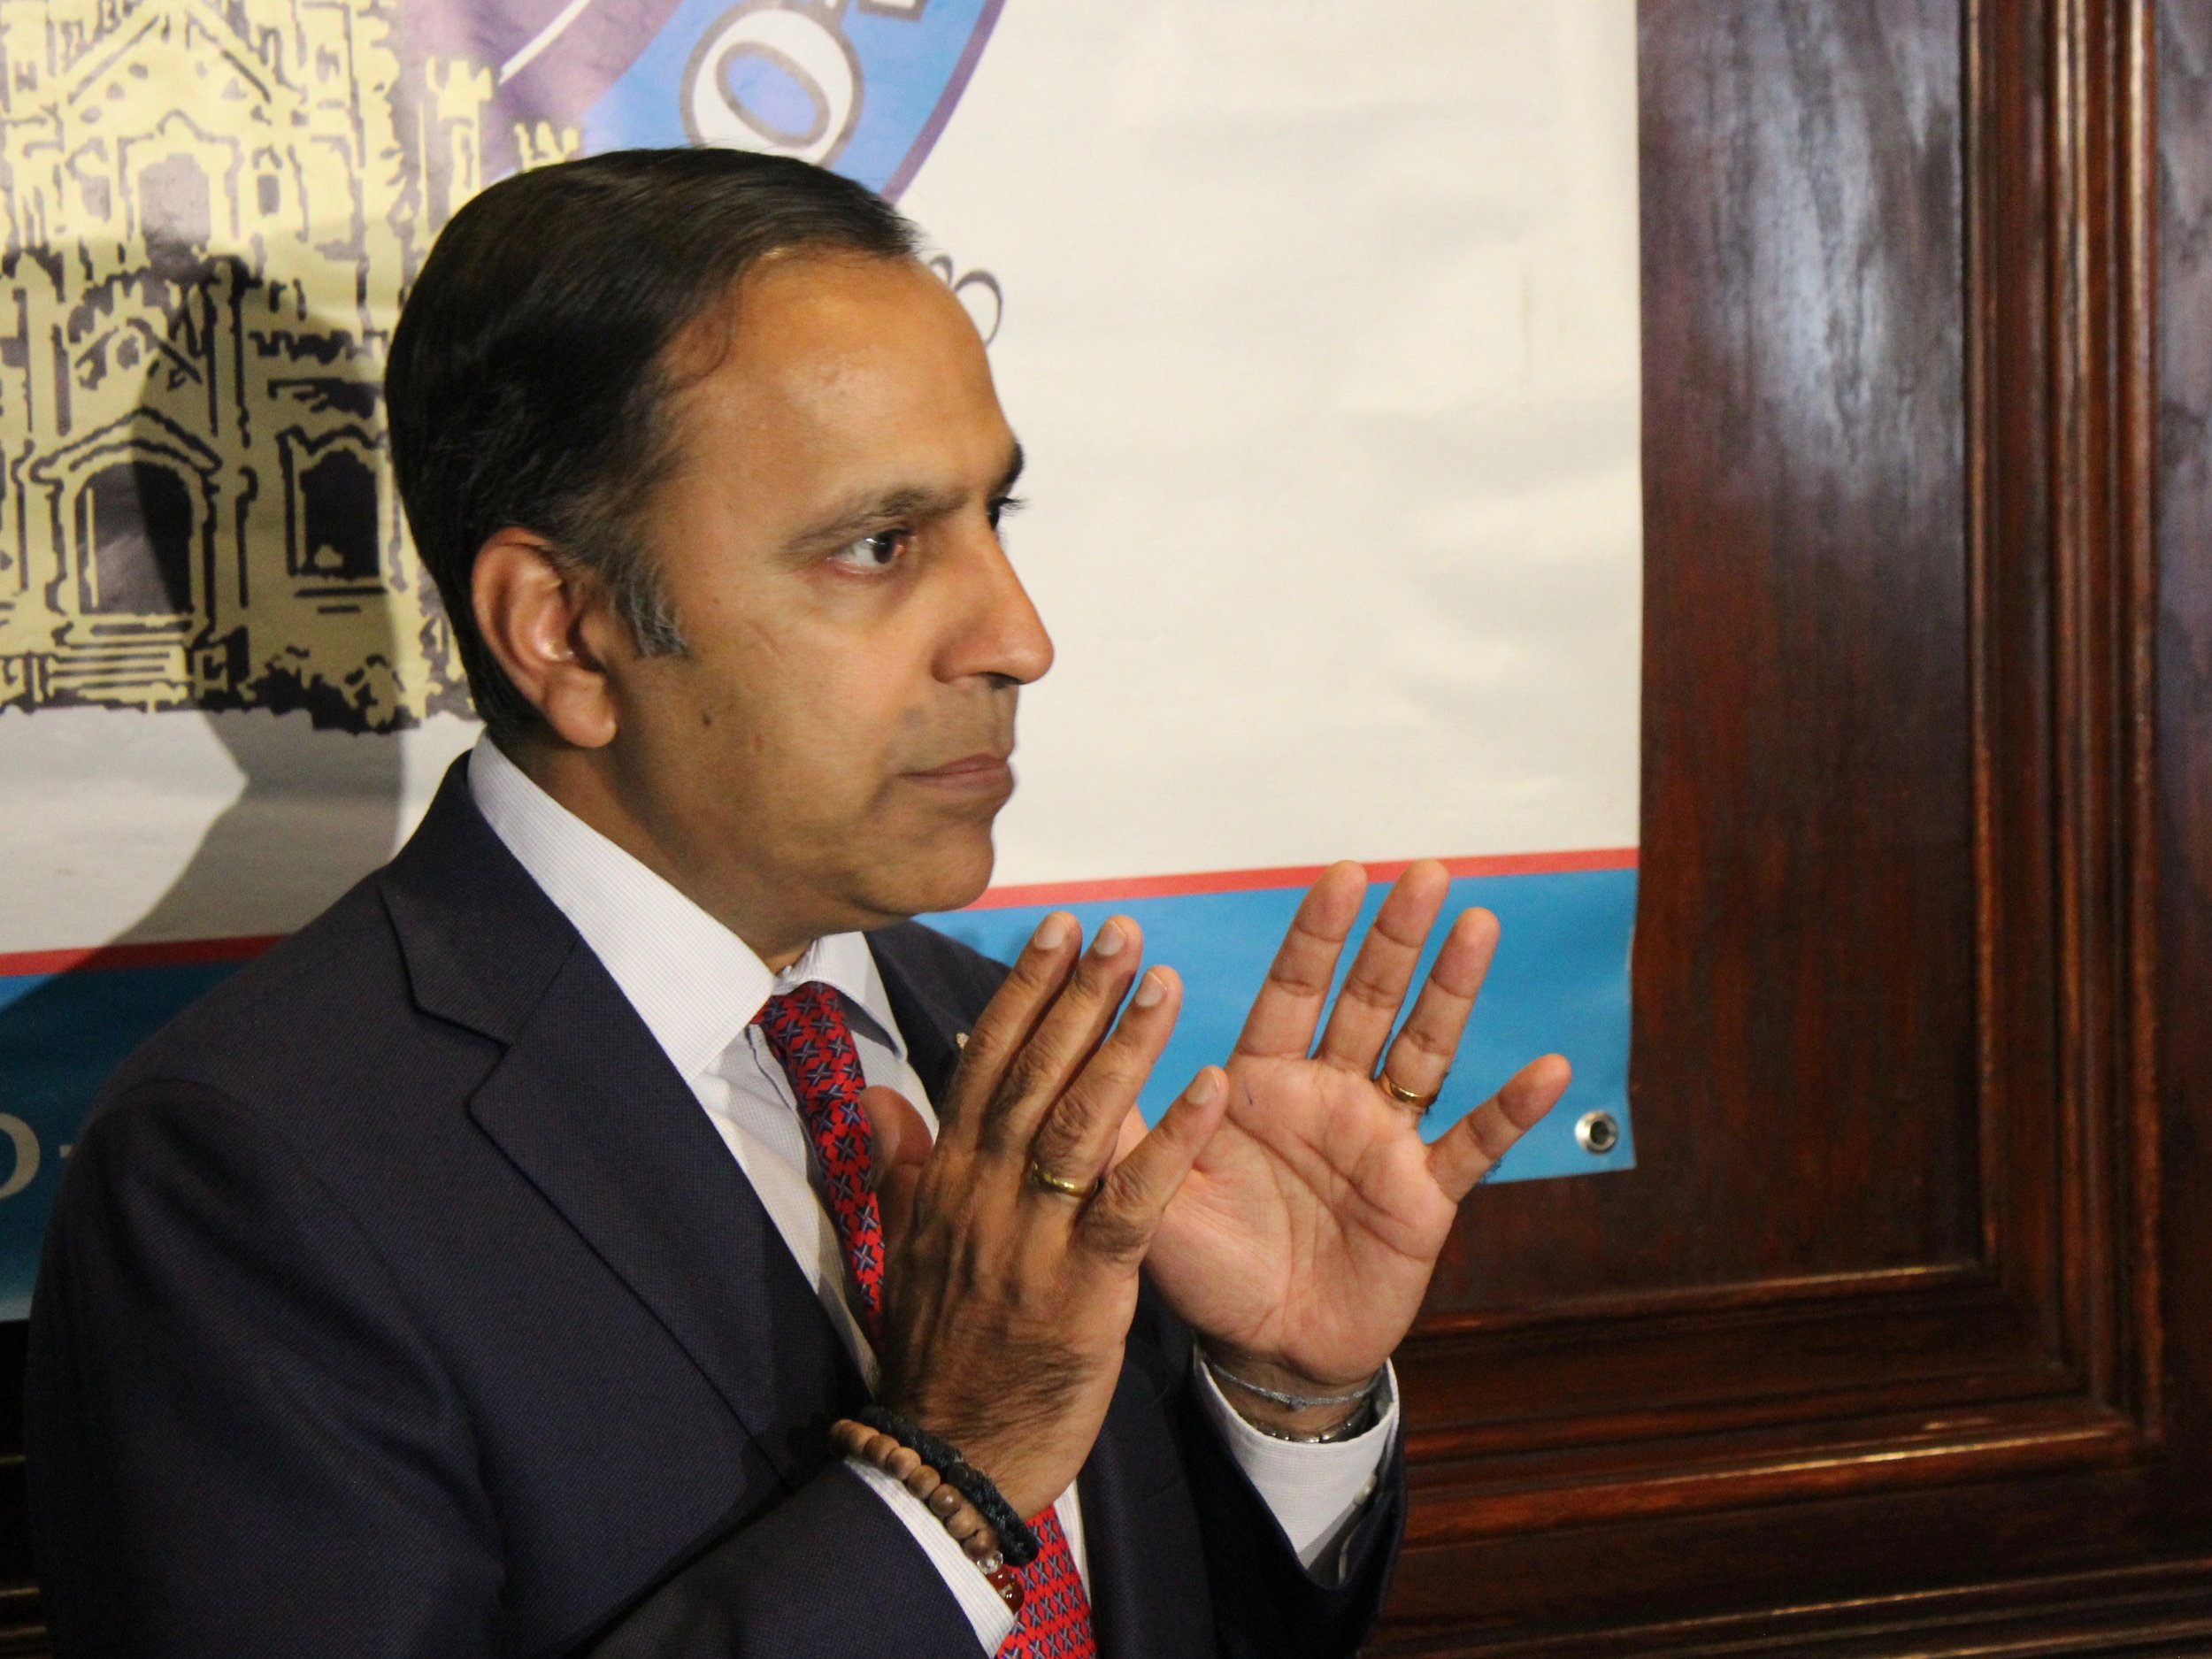 """U.S. Rep. Raja Krishnamoorthi calls for a """"thorough,"""" """"expeditious"""" impeachment inquiry into President Trump, but warns events may have to move fast to halt """"an ongoing scheme which involves compromising our national security."""" (One Illinois/Ted Cox)"""